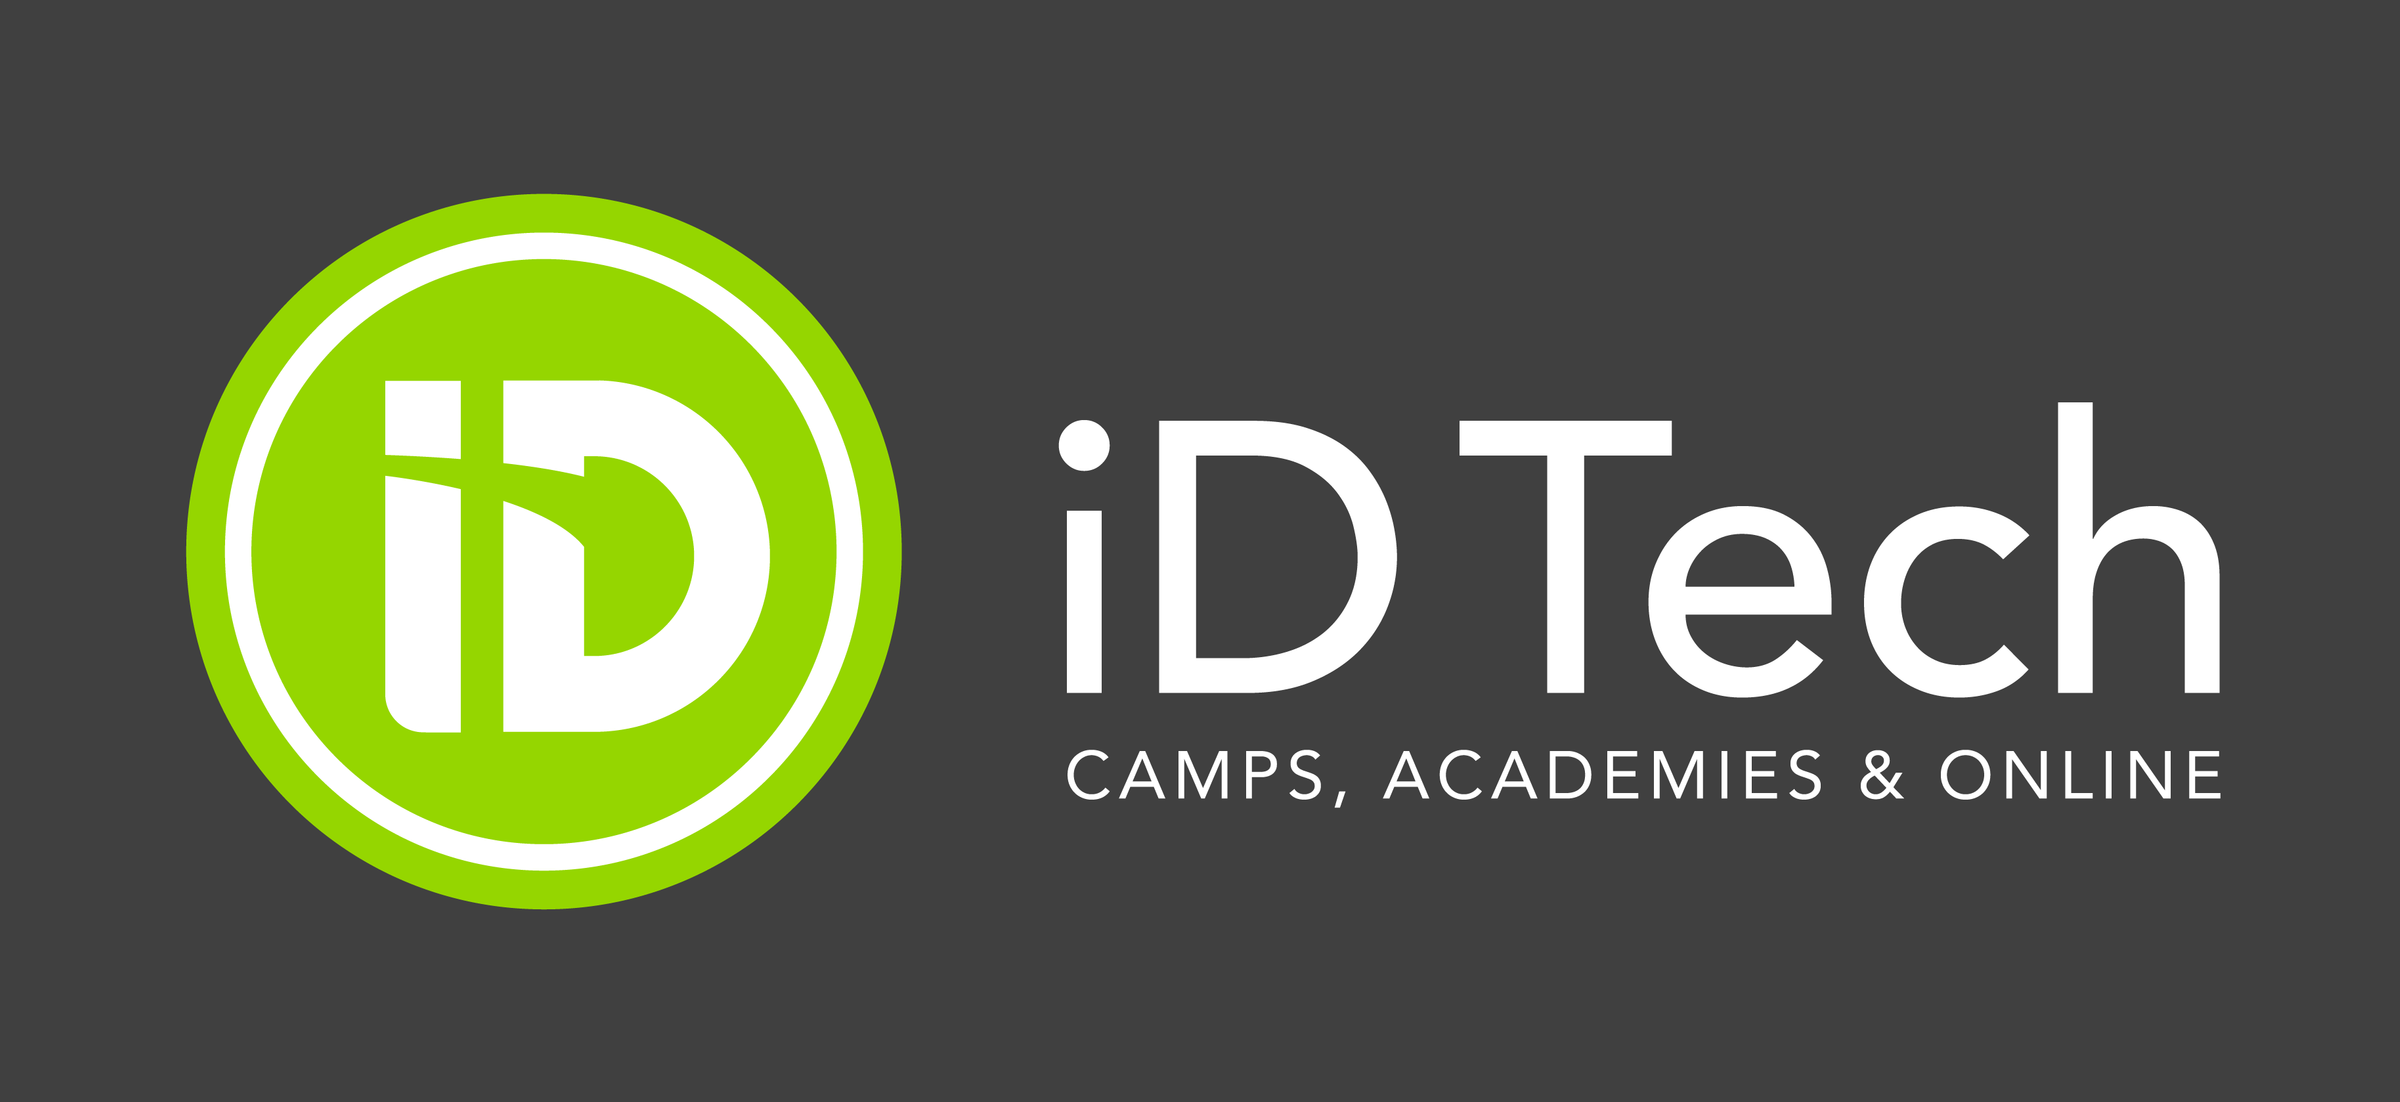 iD Tech Camps: #1 in STEM Education - Held at The Chinese University of Hong Kong